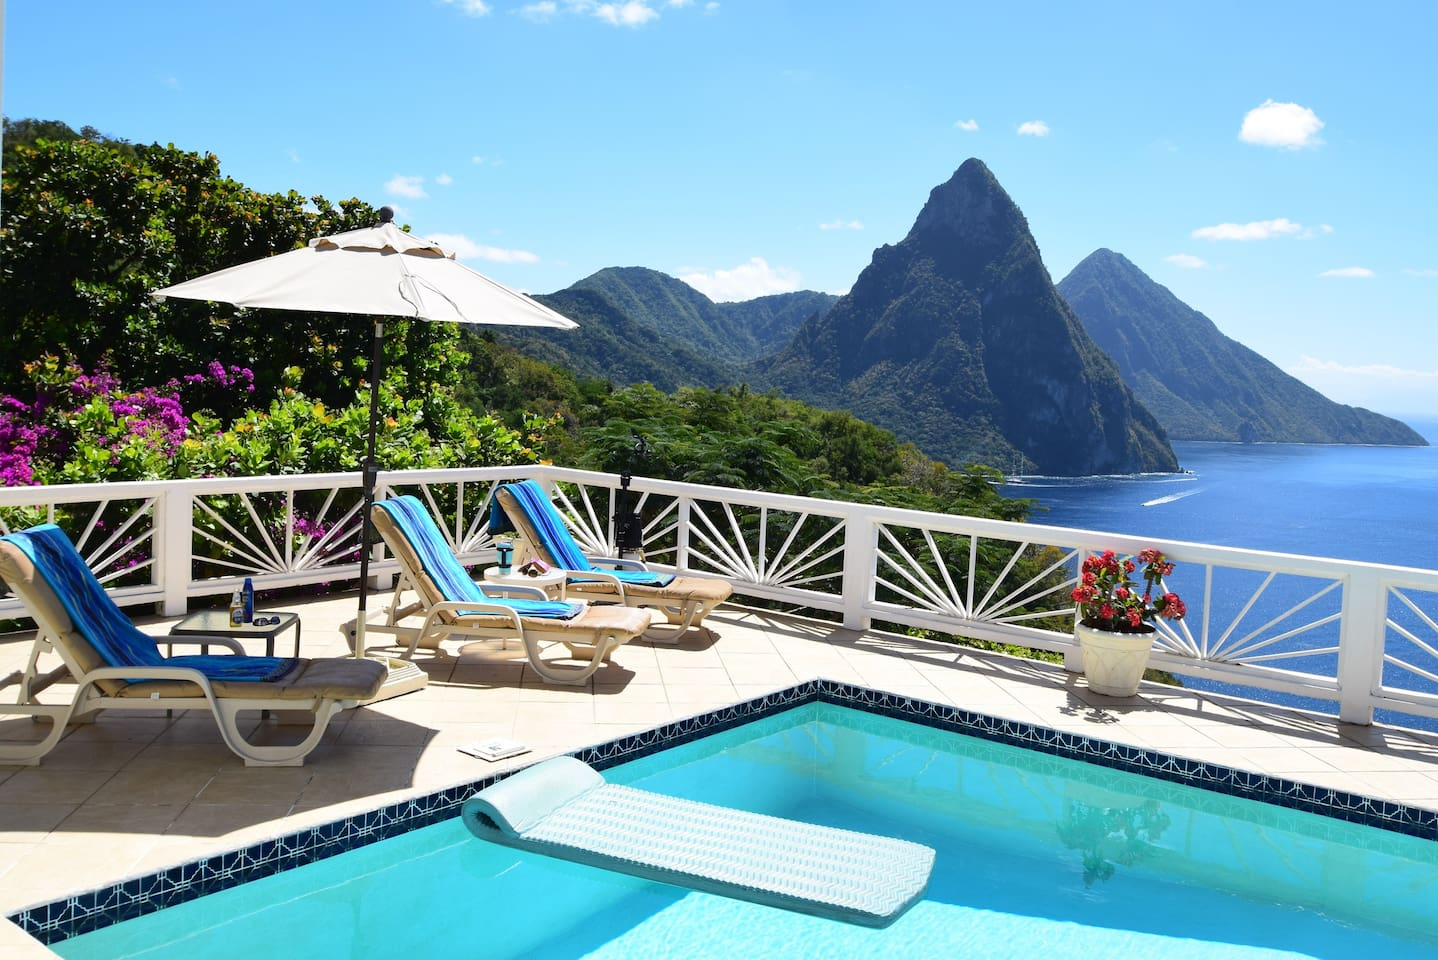 What a way to spend the day! Sun, chaise lounges, floaties, amazing  views!